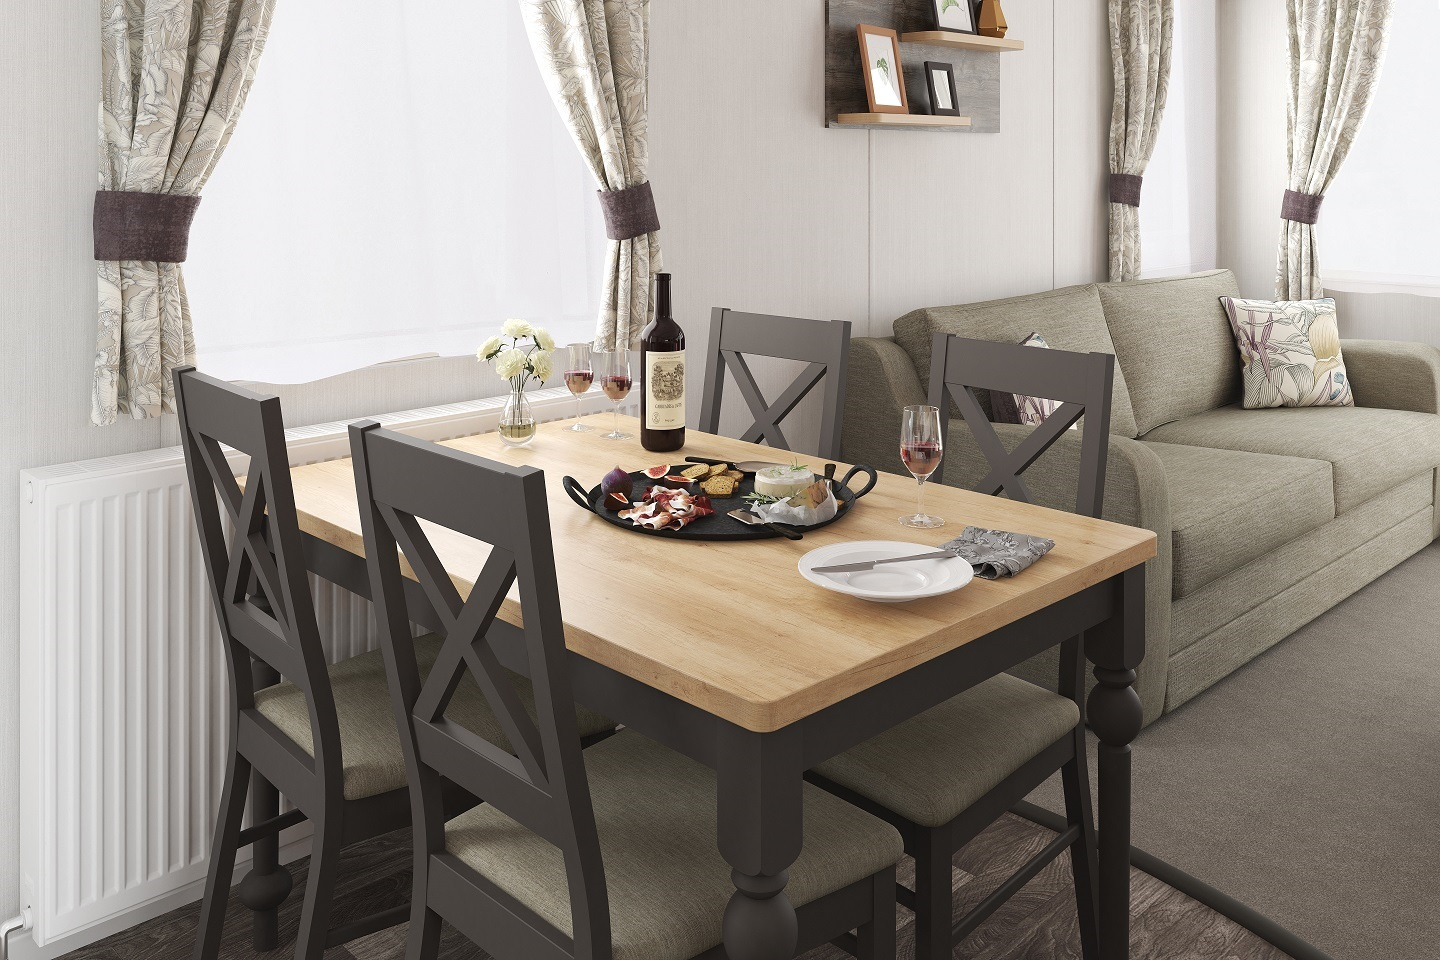 Swift Bordeaux: New Static Caravans and Holiday Homes for Sale, Langley Moor, Durham Image 1